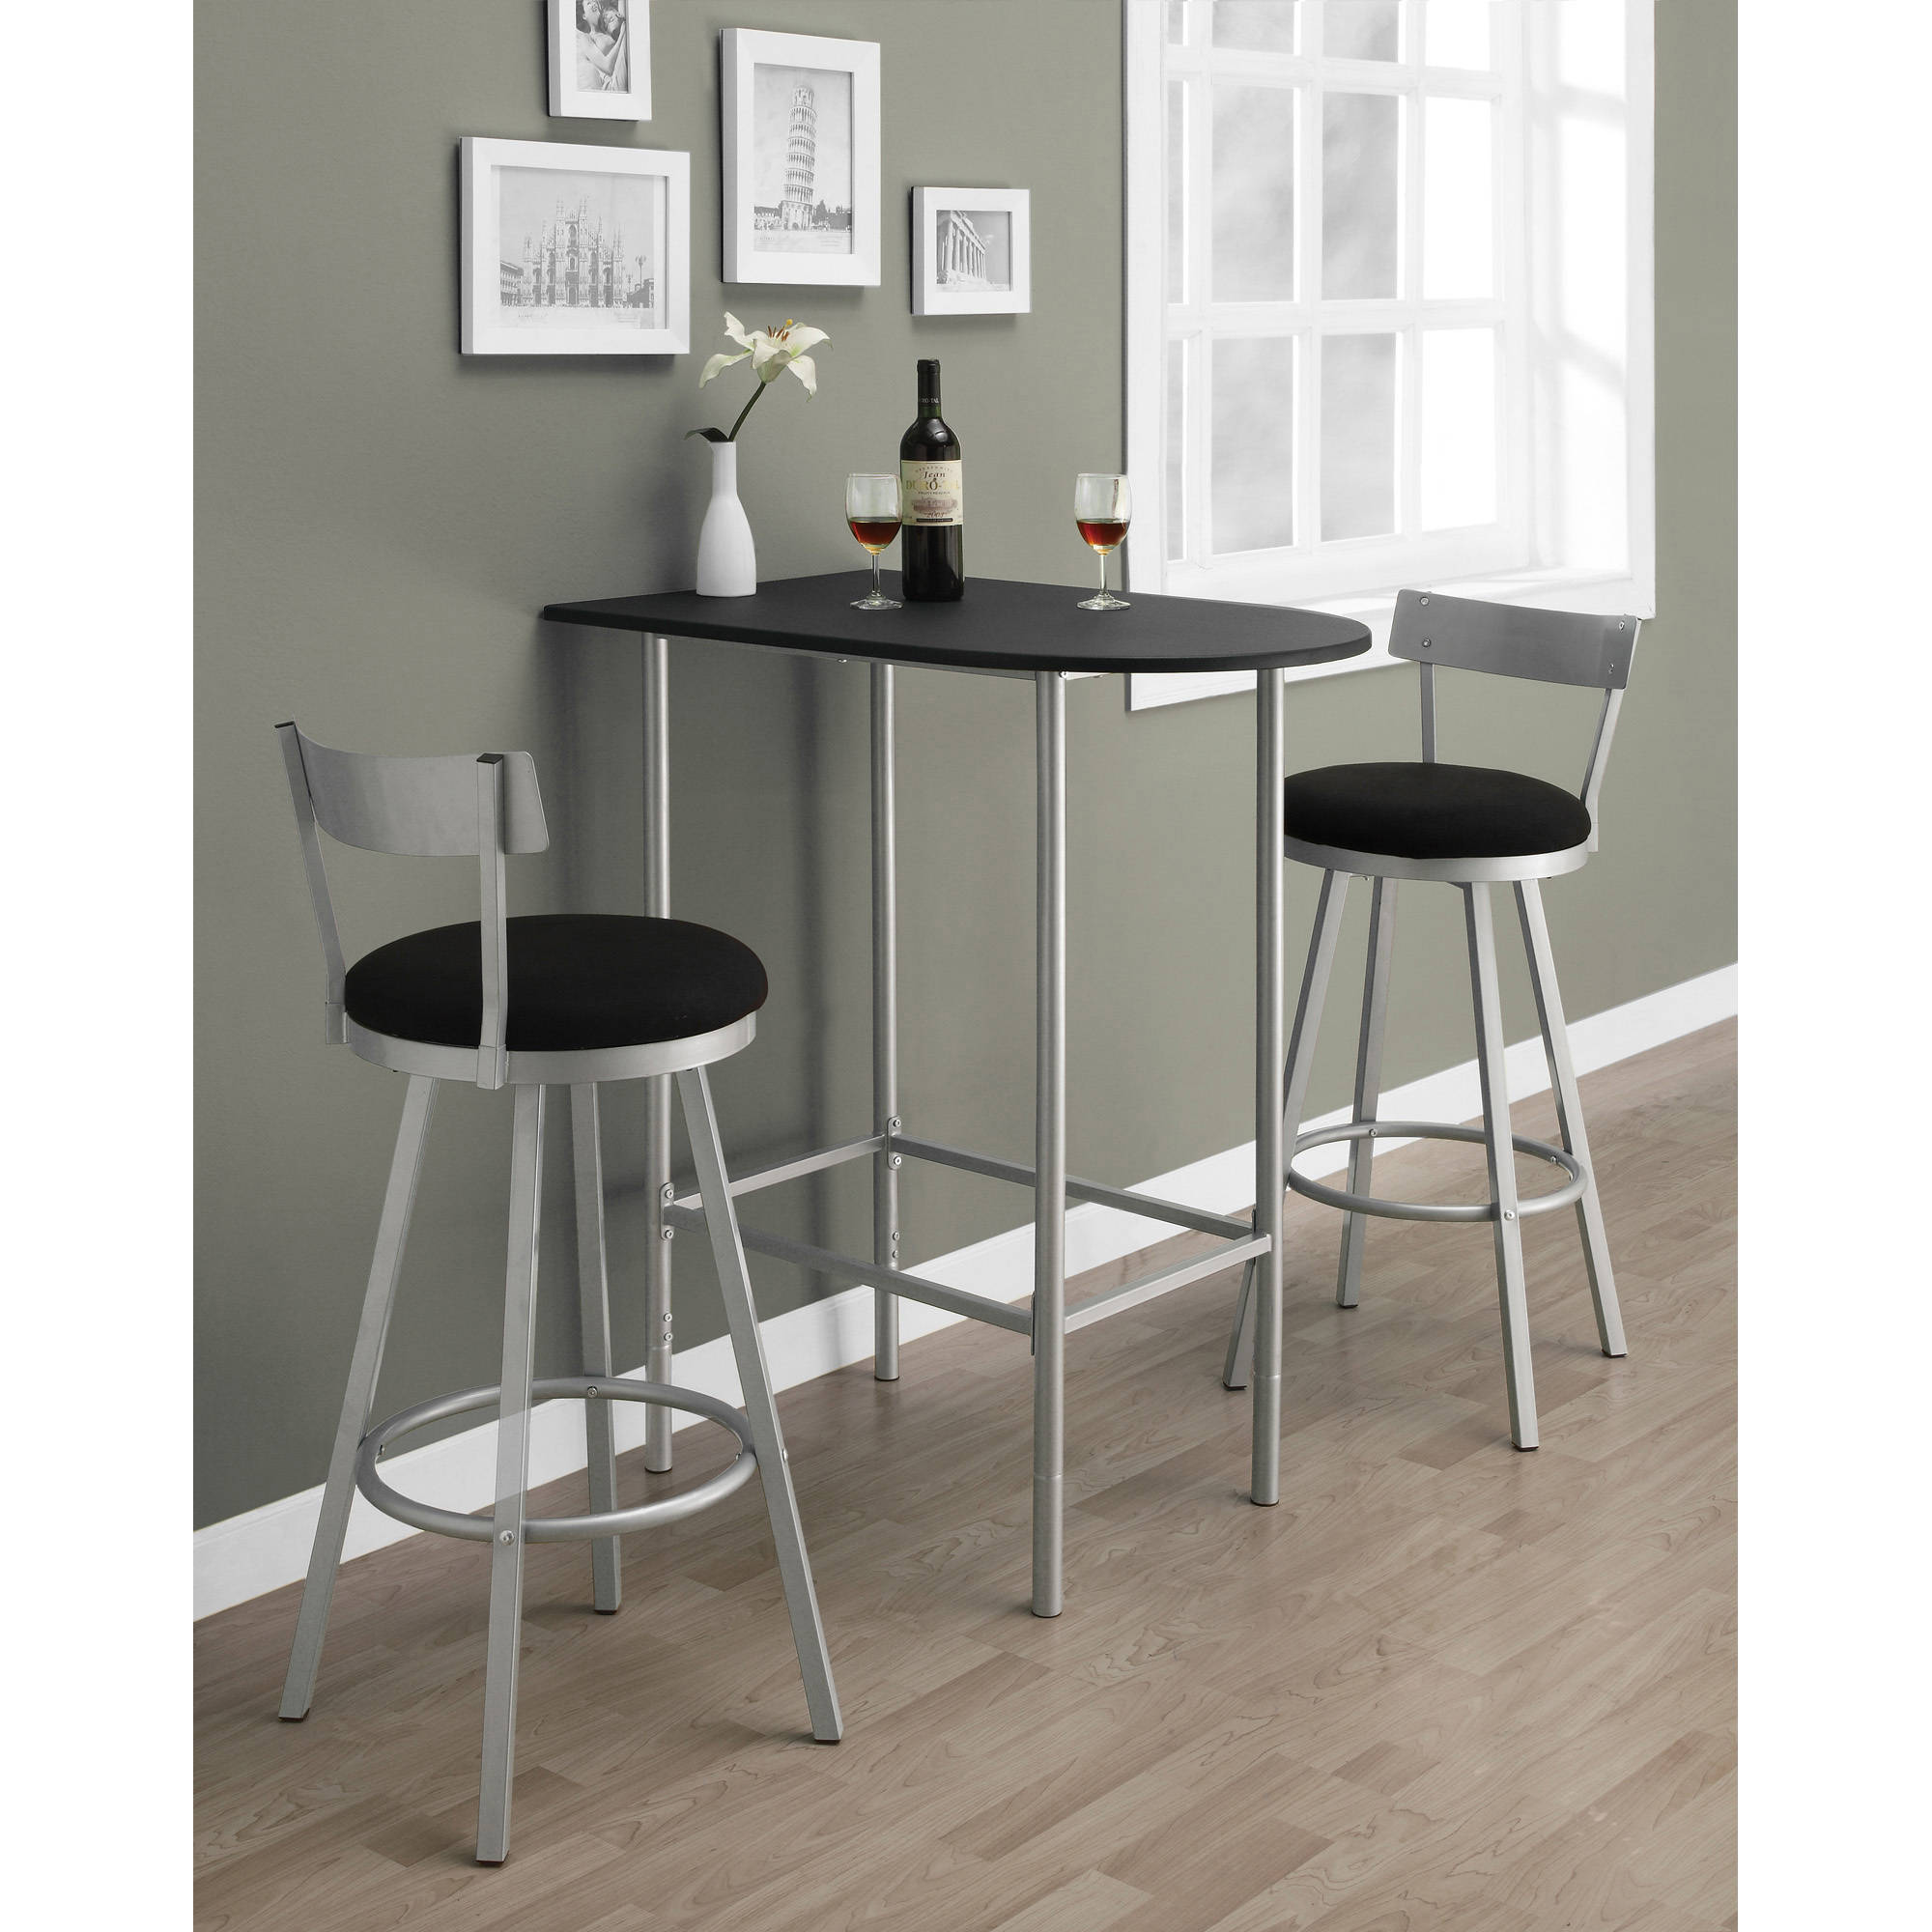 Luxury Small Kitchen Table for 2 Taste